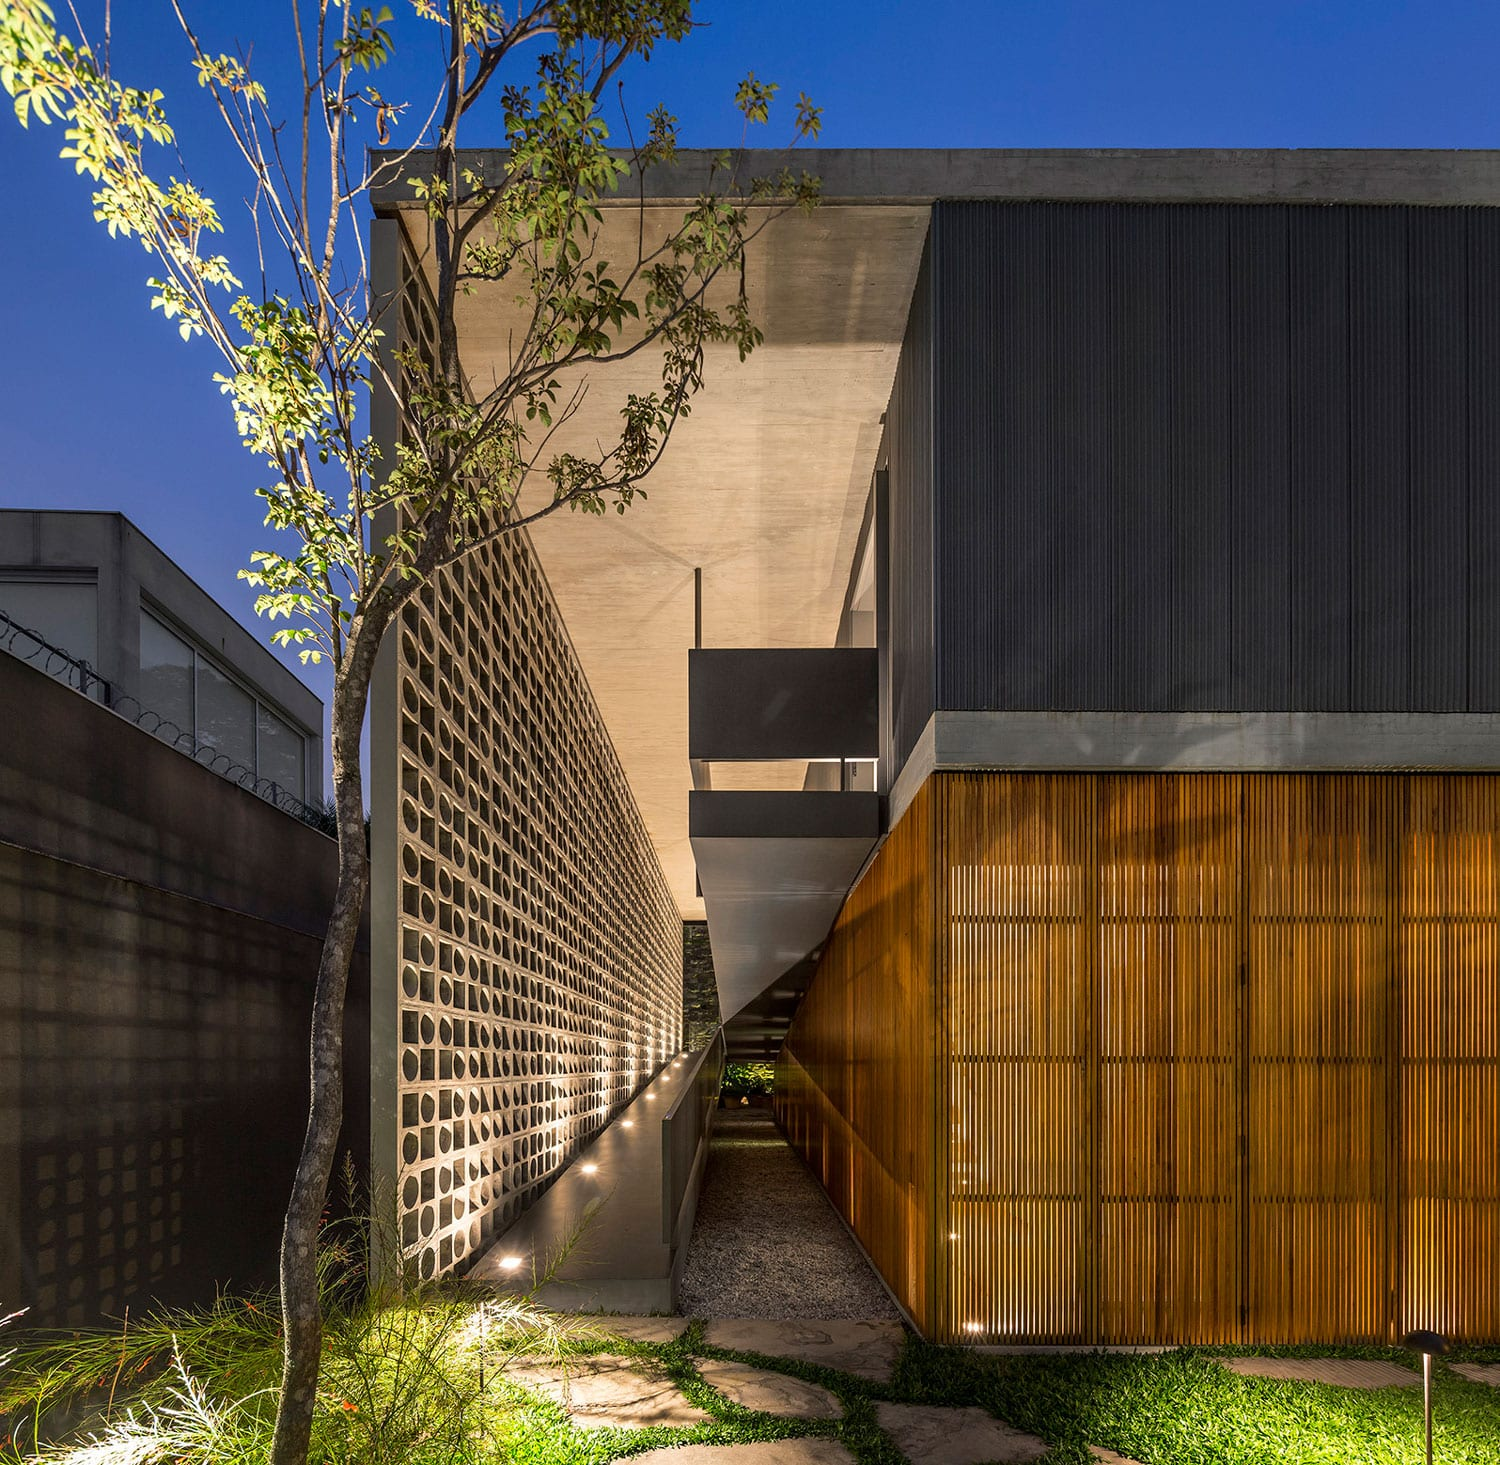 B+B House in Brazil by Studio MK27 - Marcio Kogan + Renata Furlanetto + Galeria Arquitetos | Yellowtrace